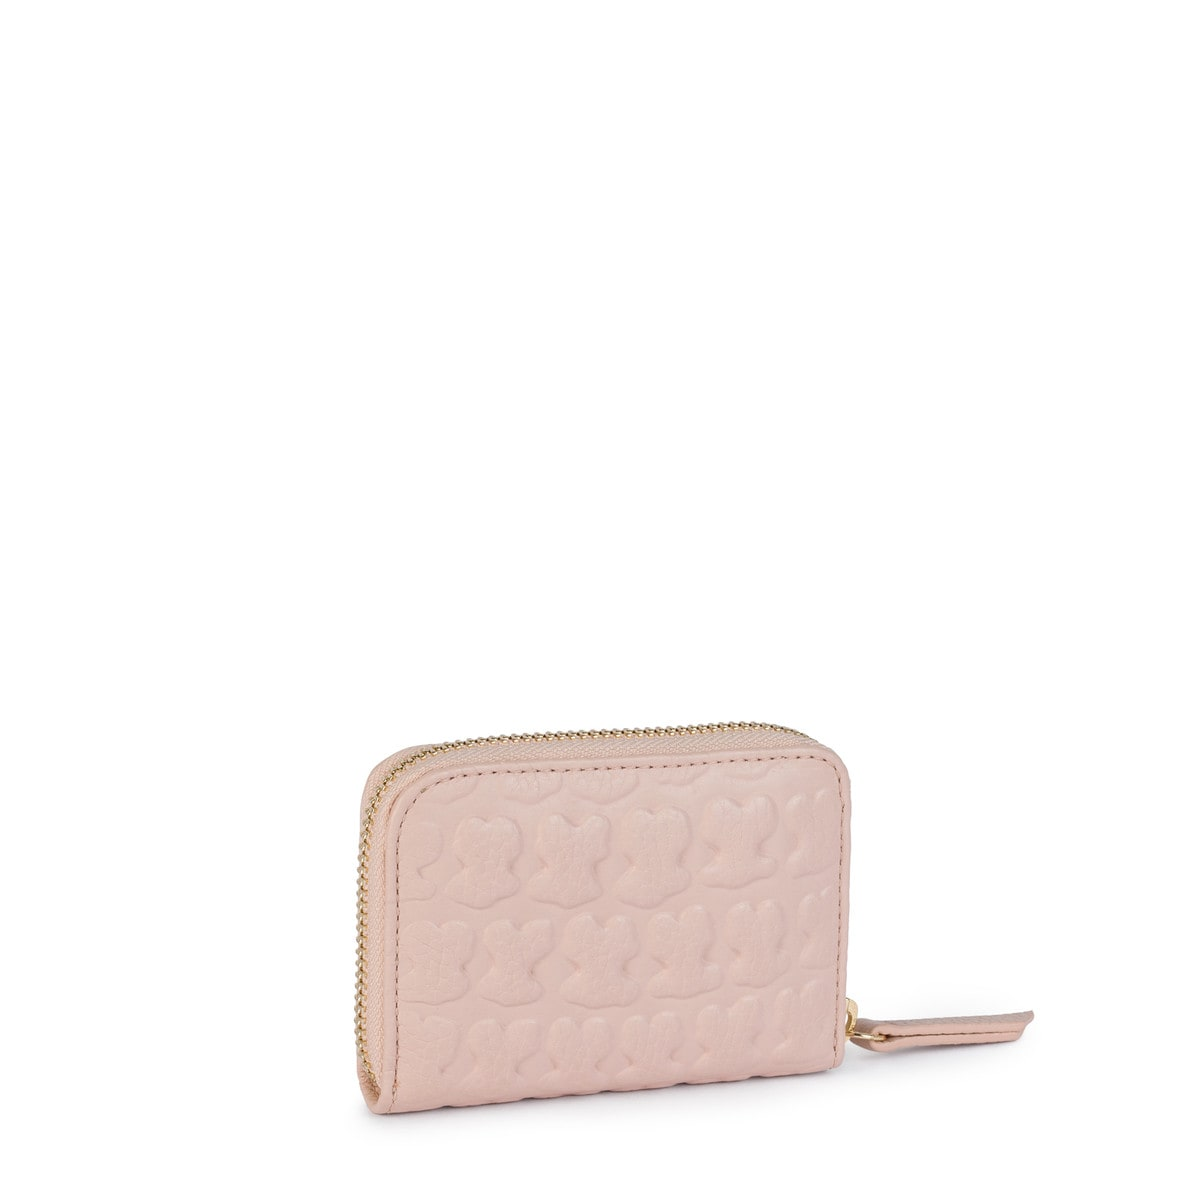 Medium pink Leather Sherton Change purse